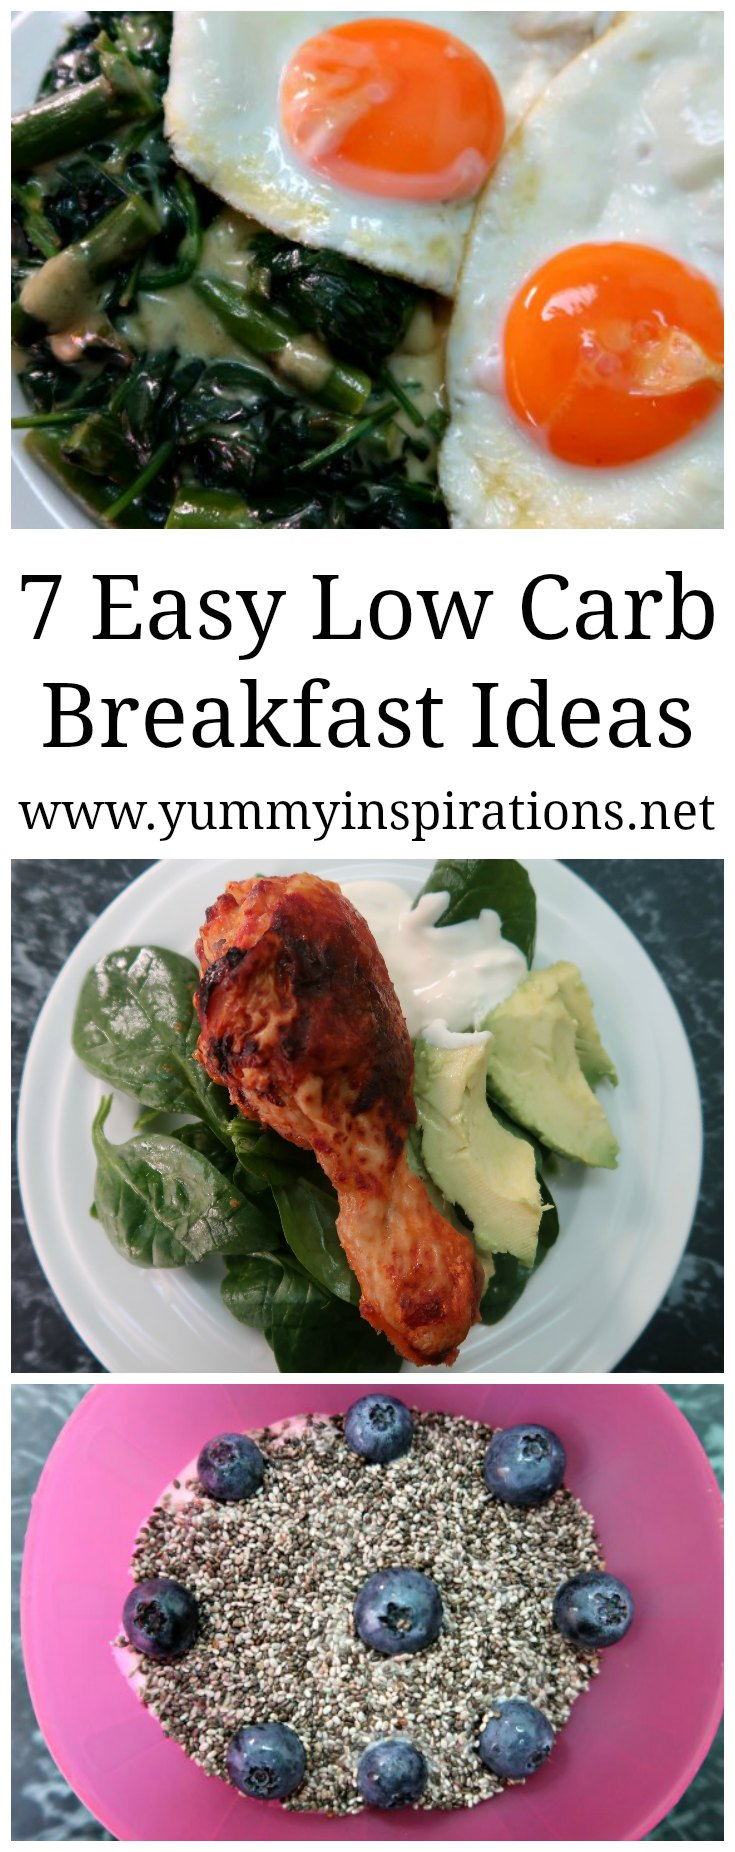 7 Low Carb Breakfast Ideas - A Week of Easy Keto Breakfasts that are LCHF and Ketogenic Diet friendly - without eggs, vegetarian and meaty options.